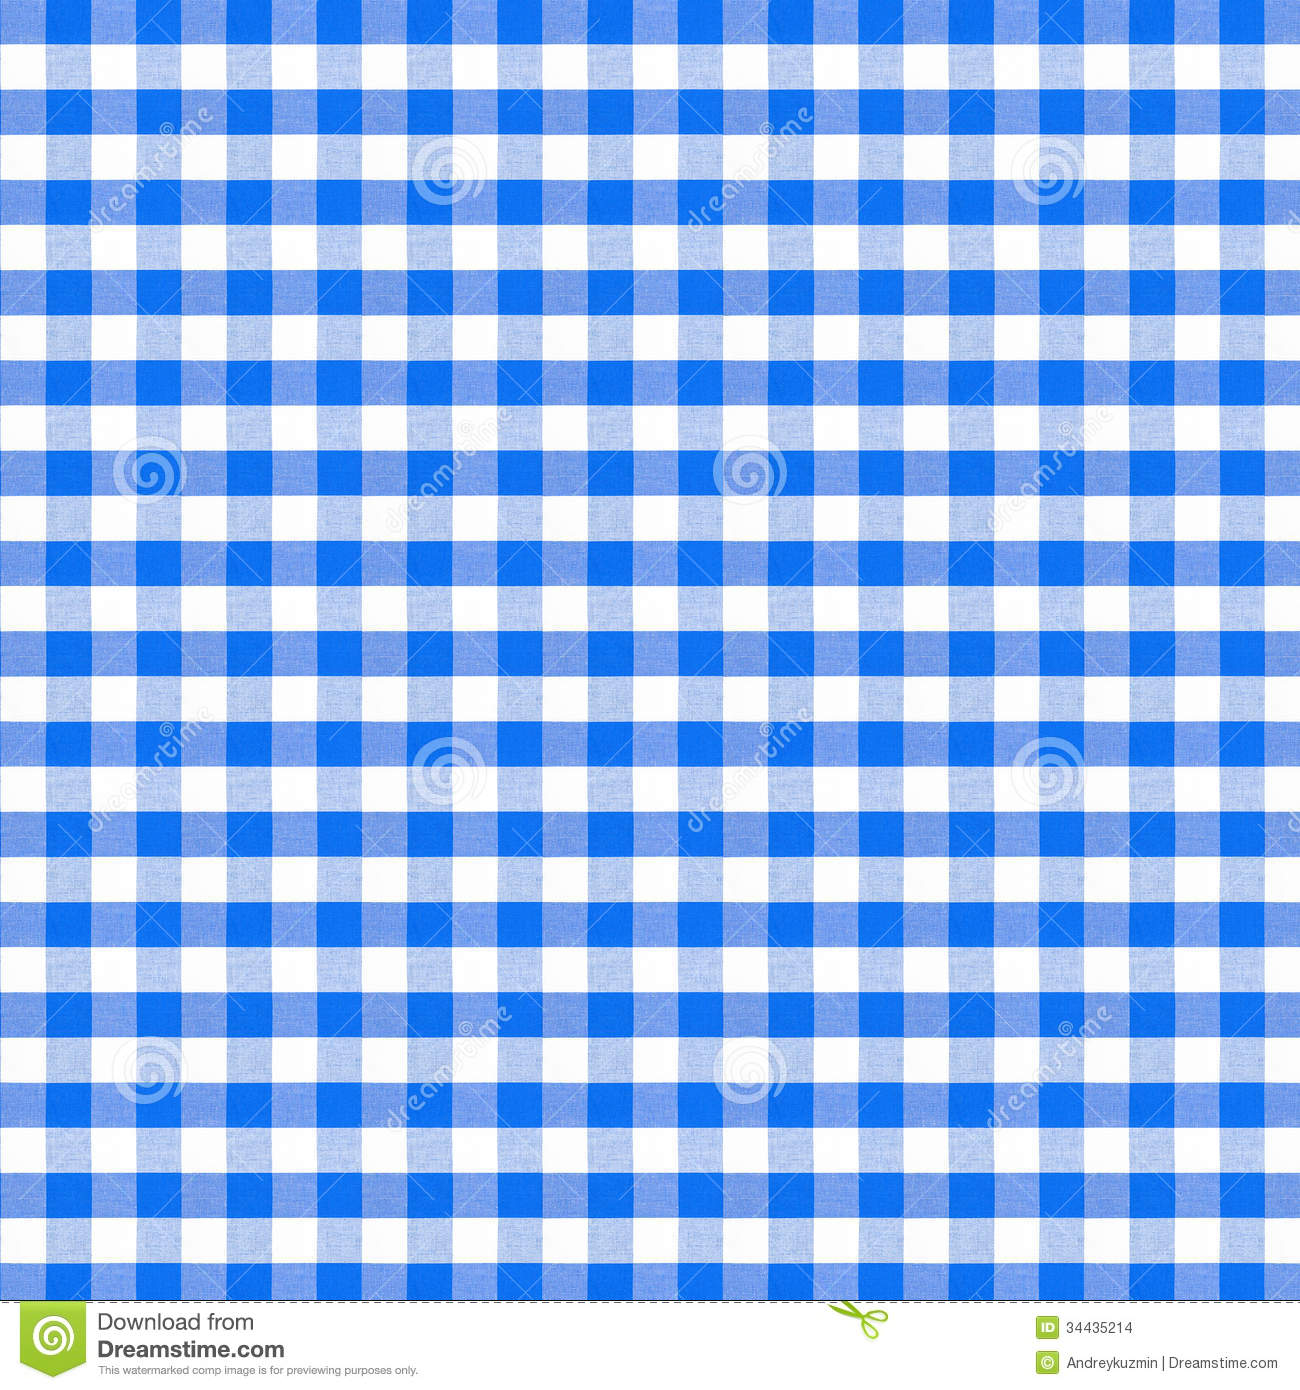 Blue tablecloth background - Blue Picnic Tablecloth Seamless Pattern Stock Images